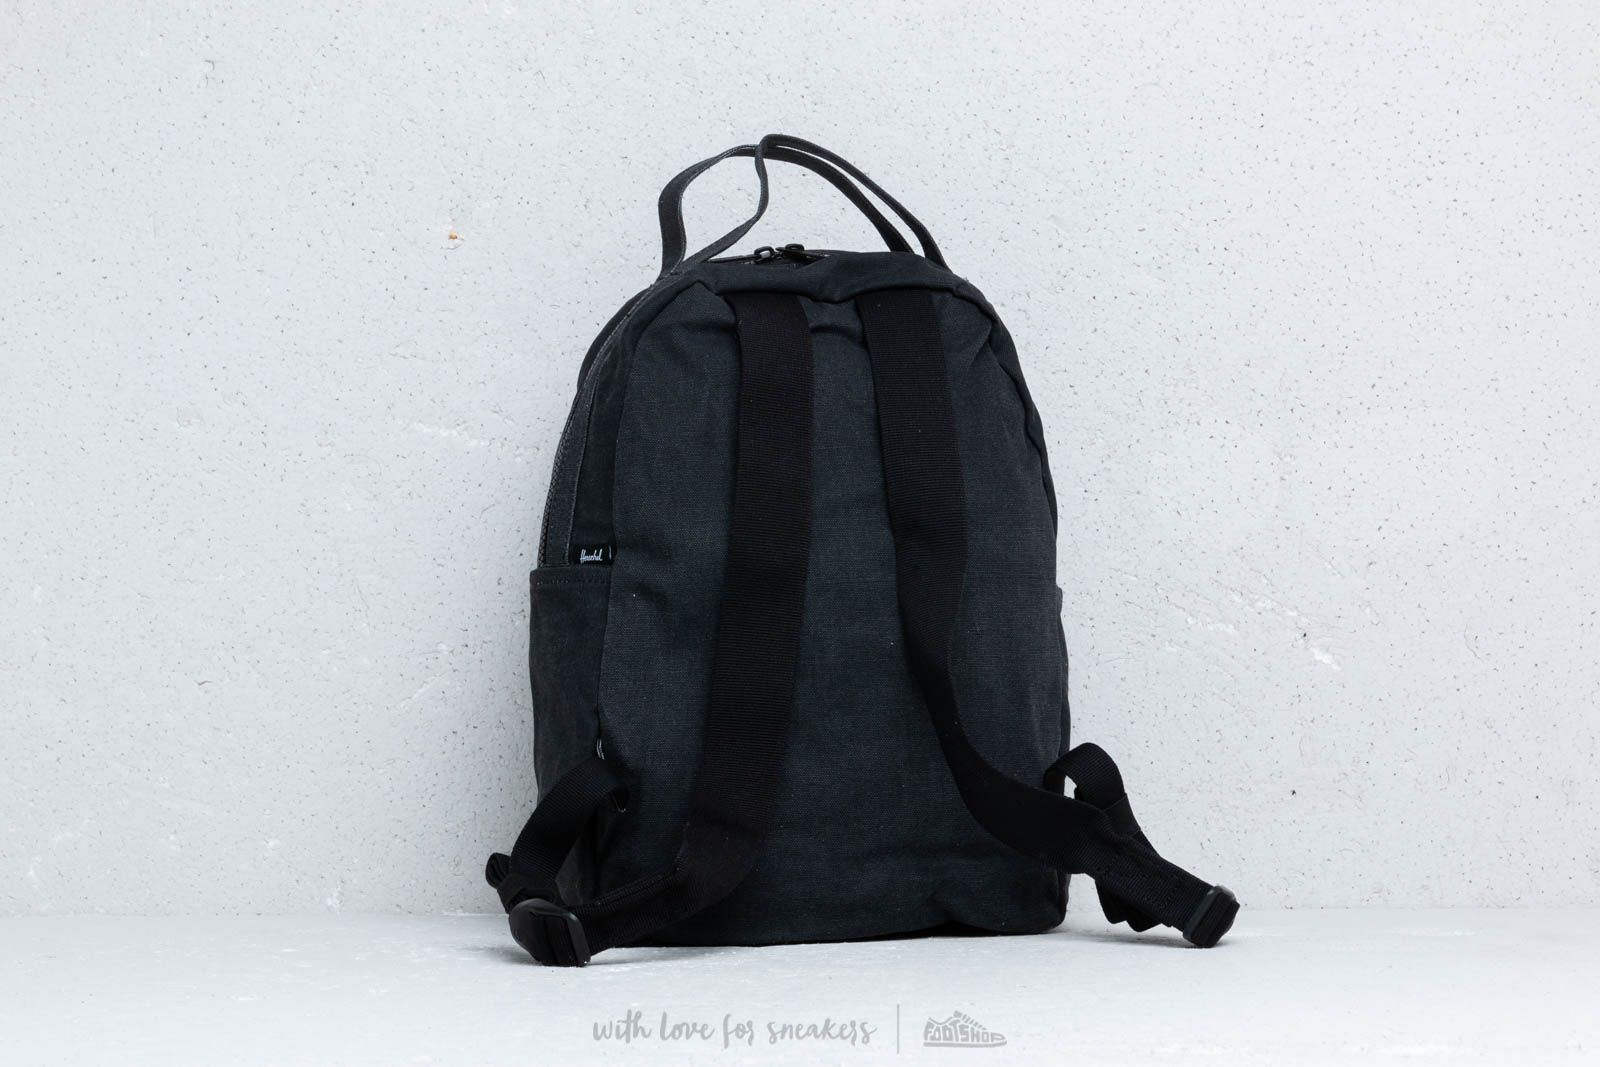 410bcefd6a3 Herschel Supply Co. Nova X-Small Backpack Black at a great price  69 buy